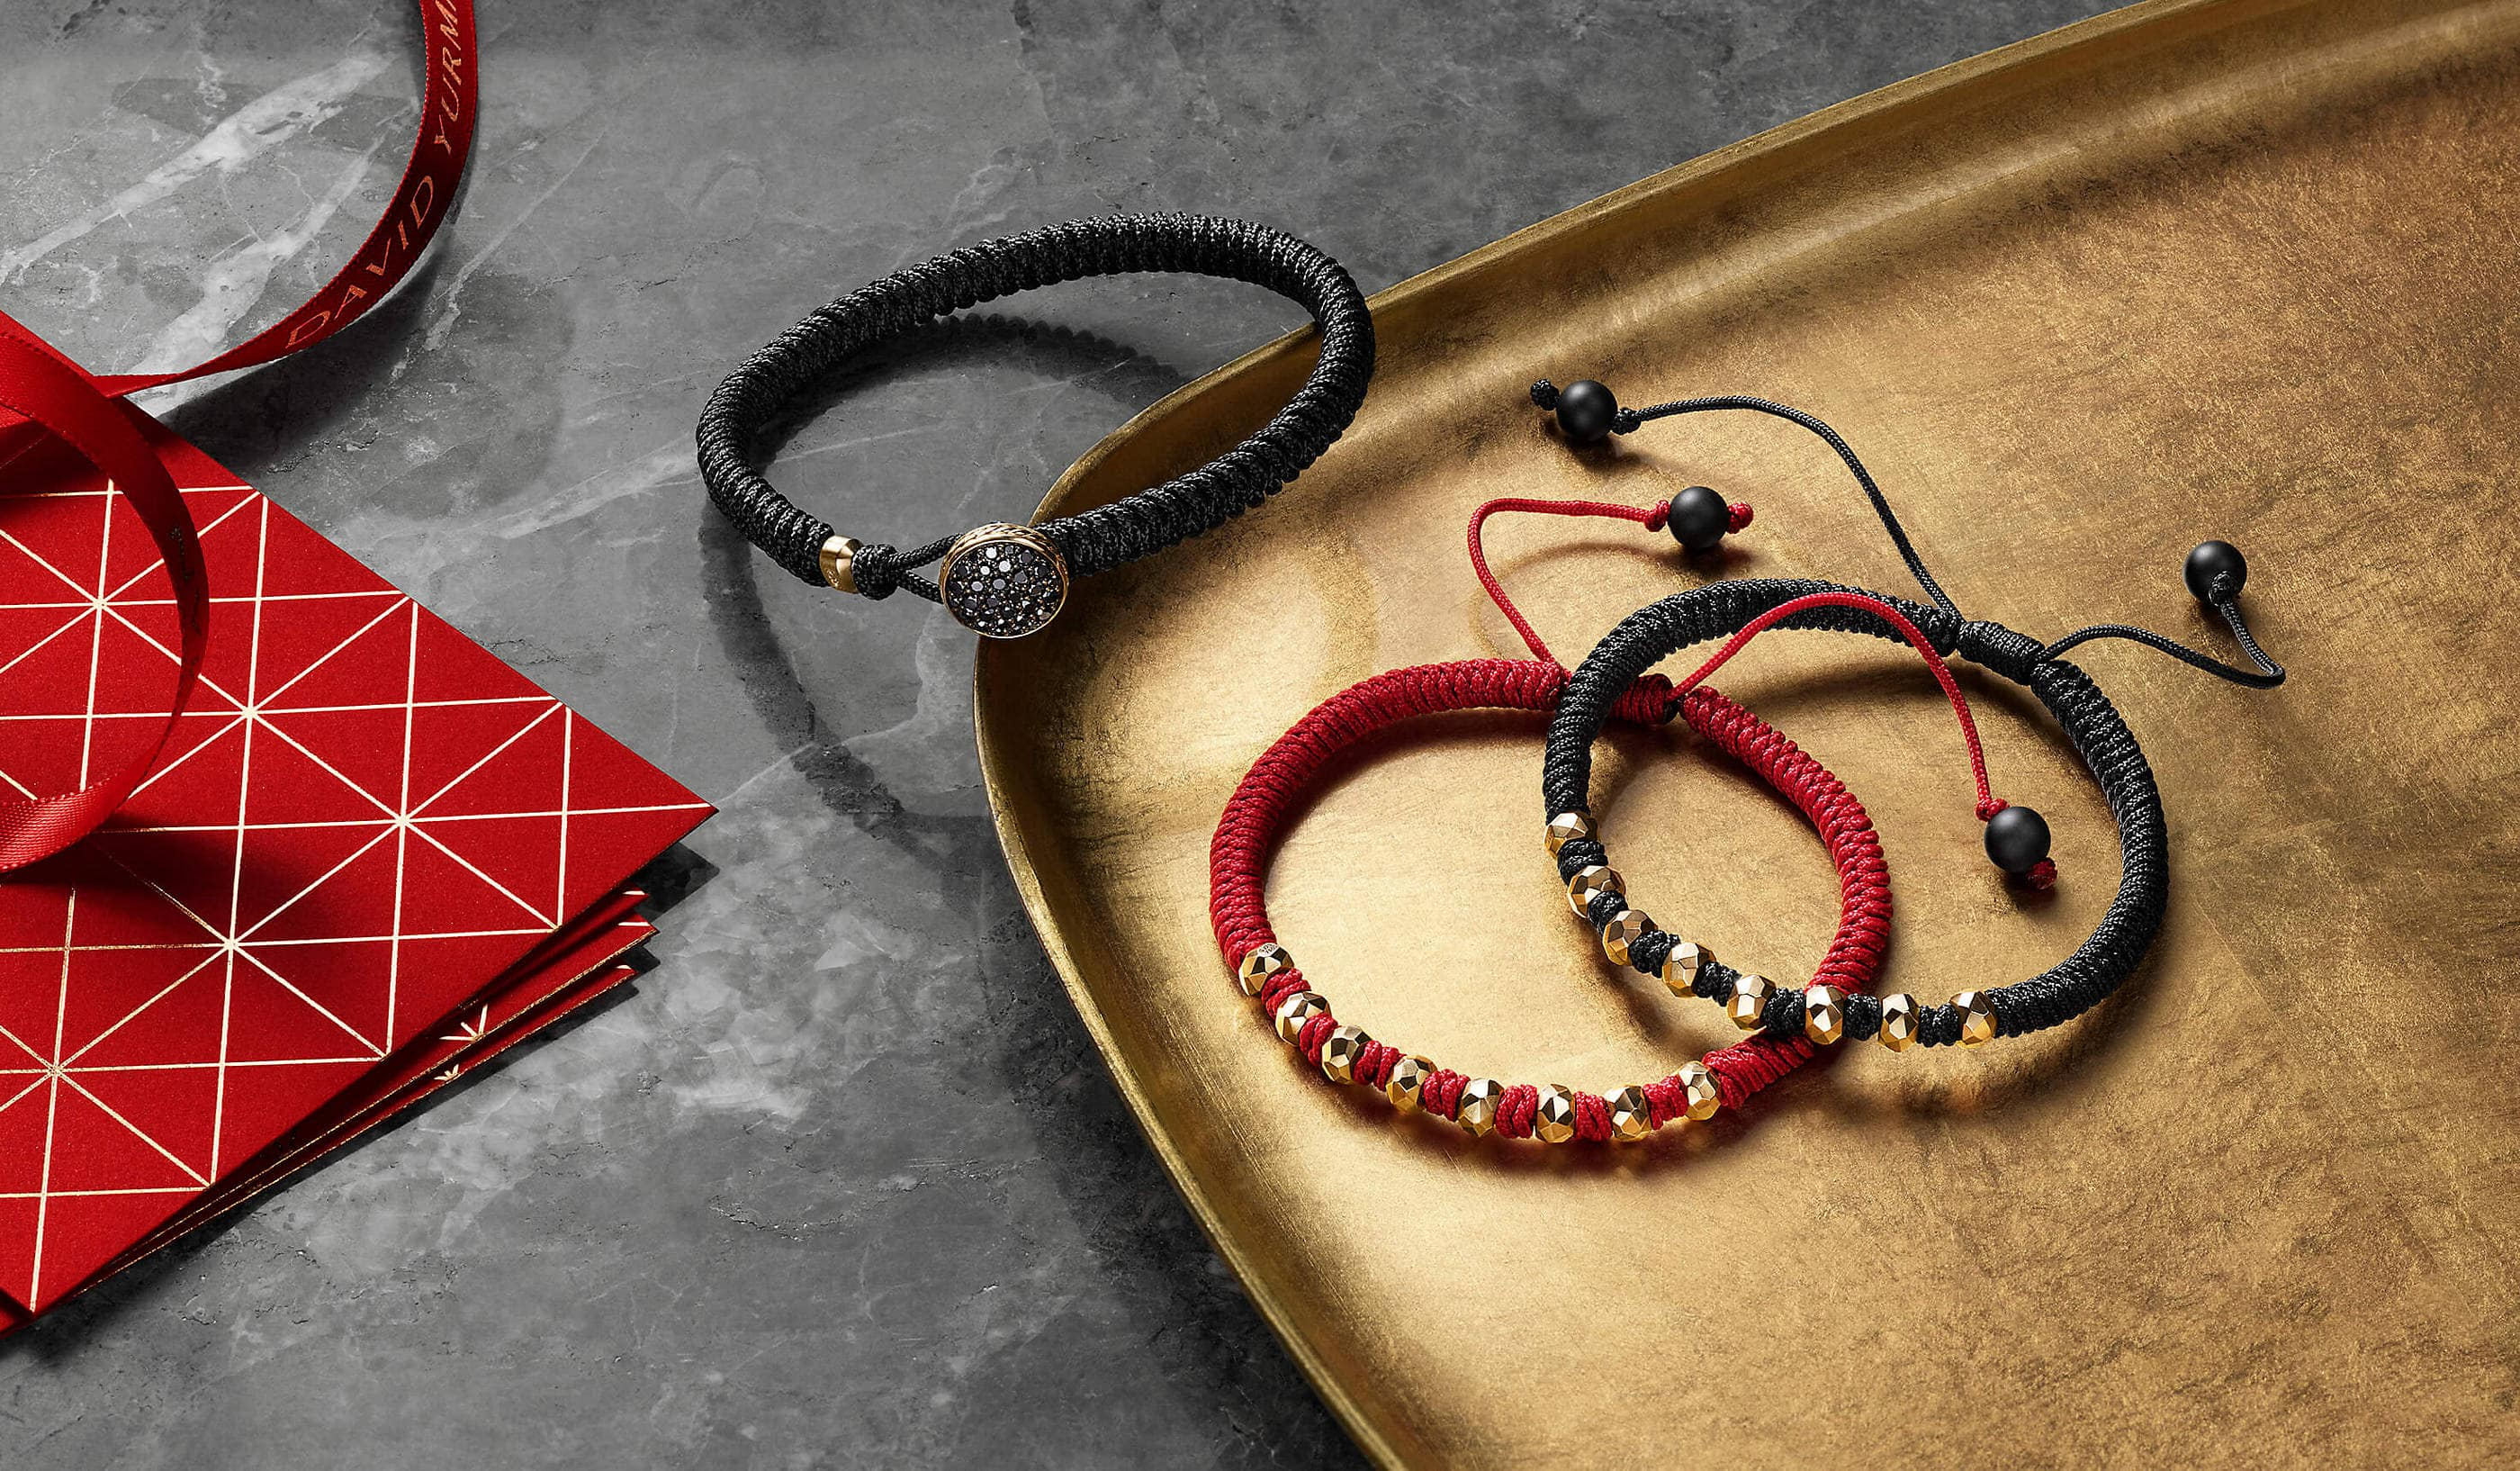 A color photograph shows three David Yurman men's red and black nylon bracelets scattered on a golden tray and a grey marble surface next to a stack of red envelope printed with golden triangles and a red ribbon. The bracelets are crafted from 18K yellow gold. One bracelet has a round clasp covered with black diamonds. Two bracelets have black onyx beads.